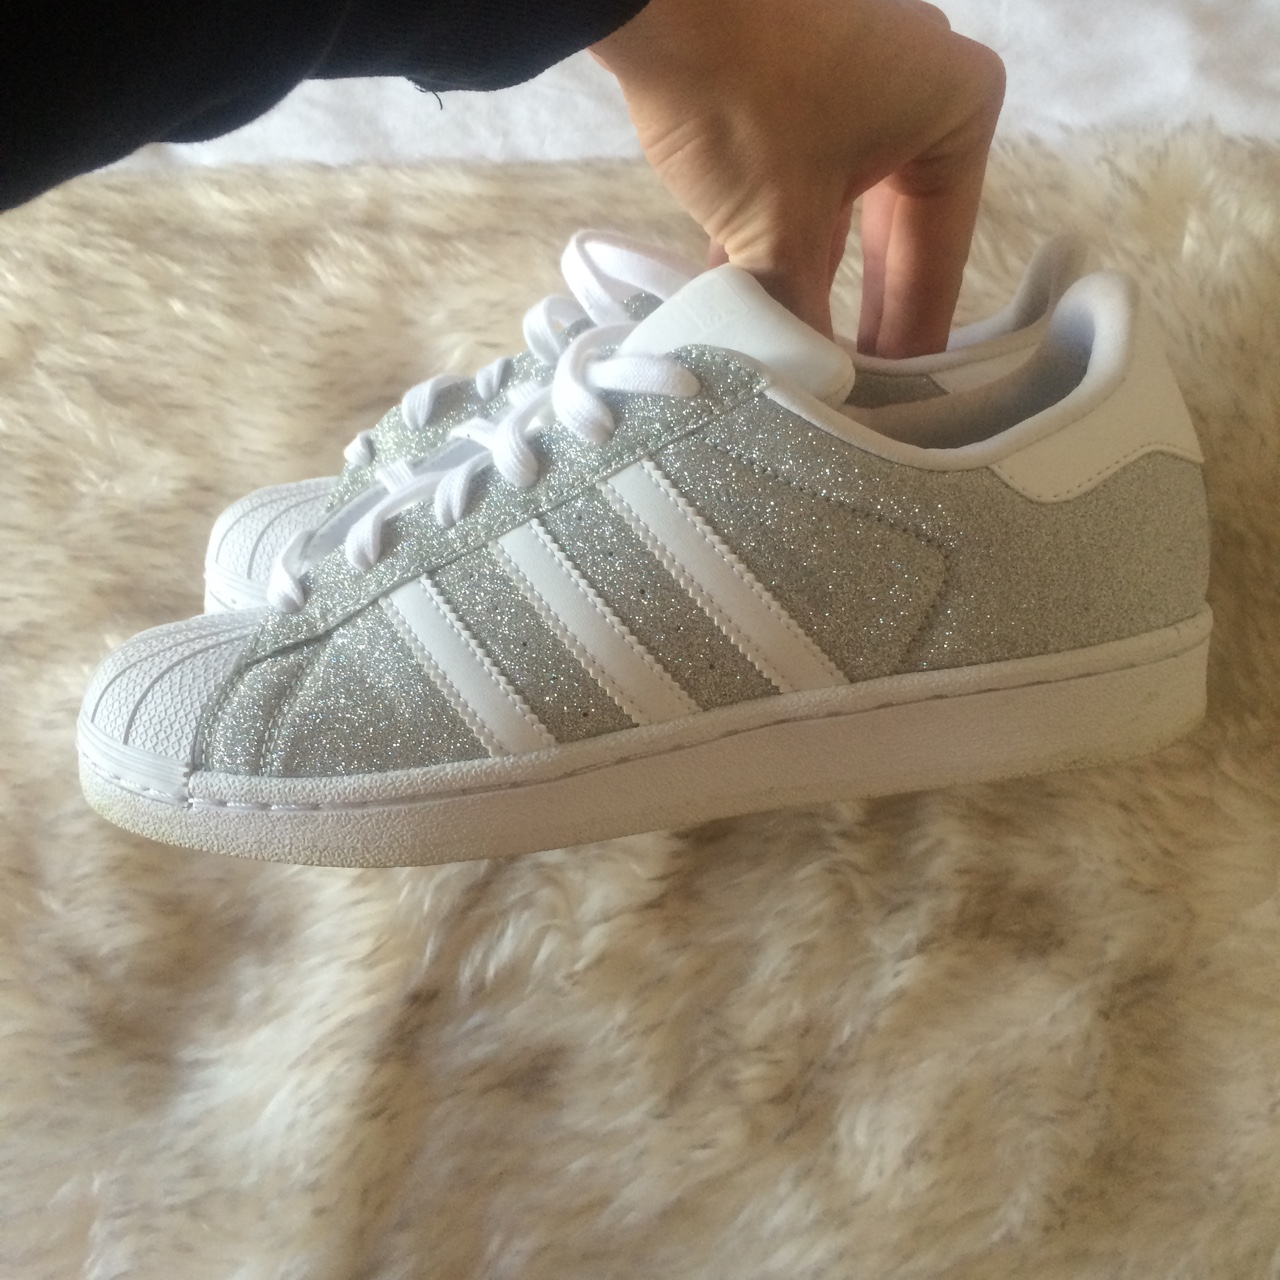 Adidas superstars silver glitter trainers worn Depop